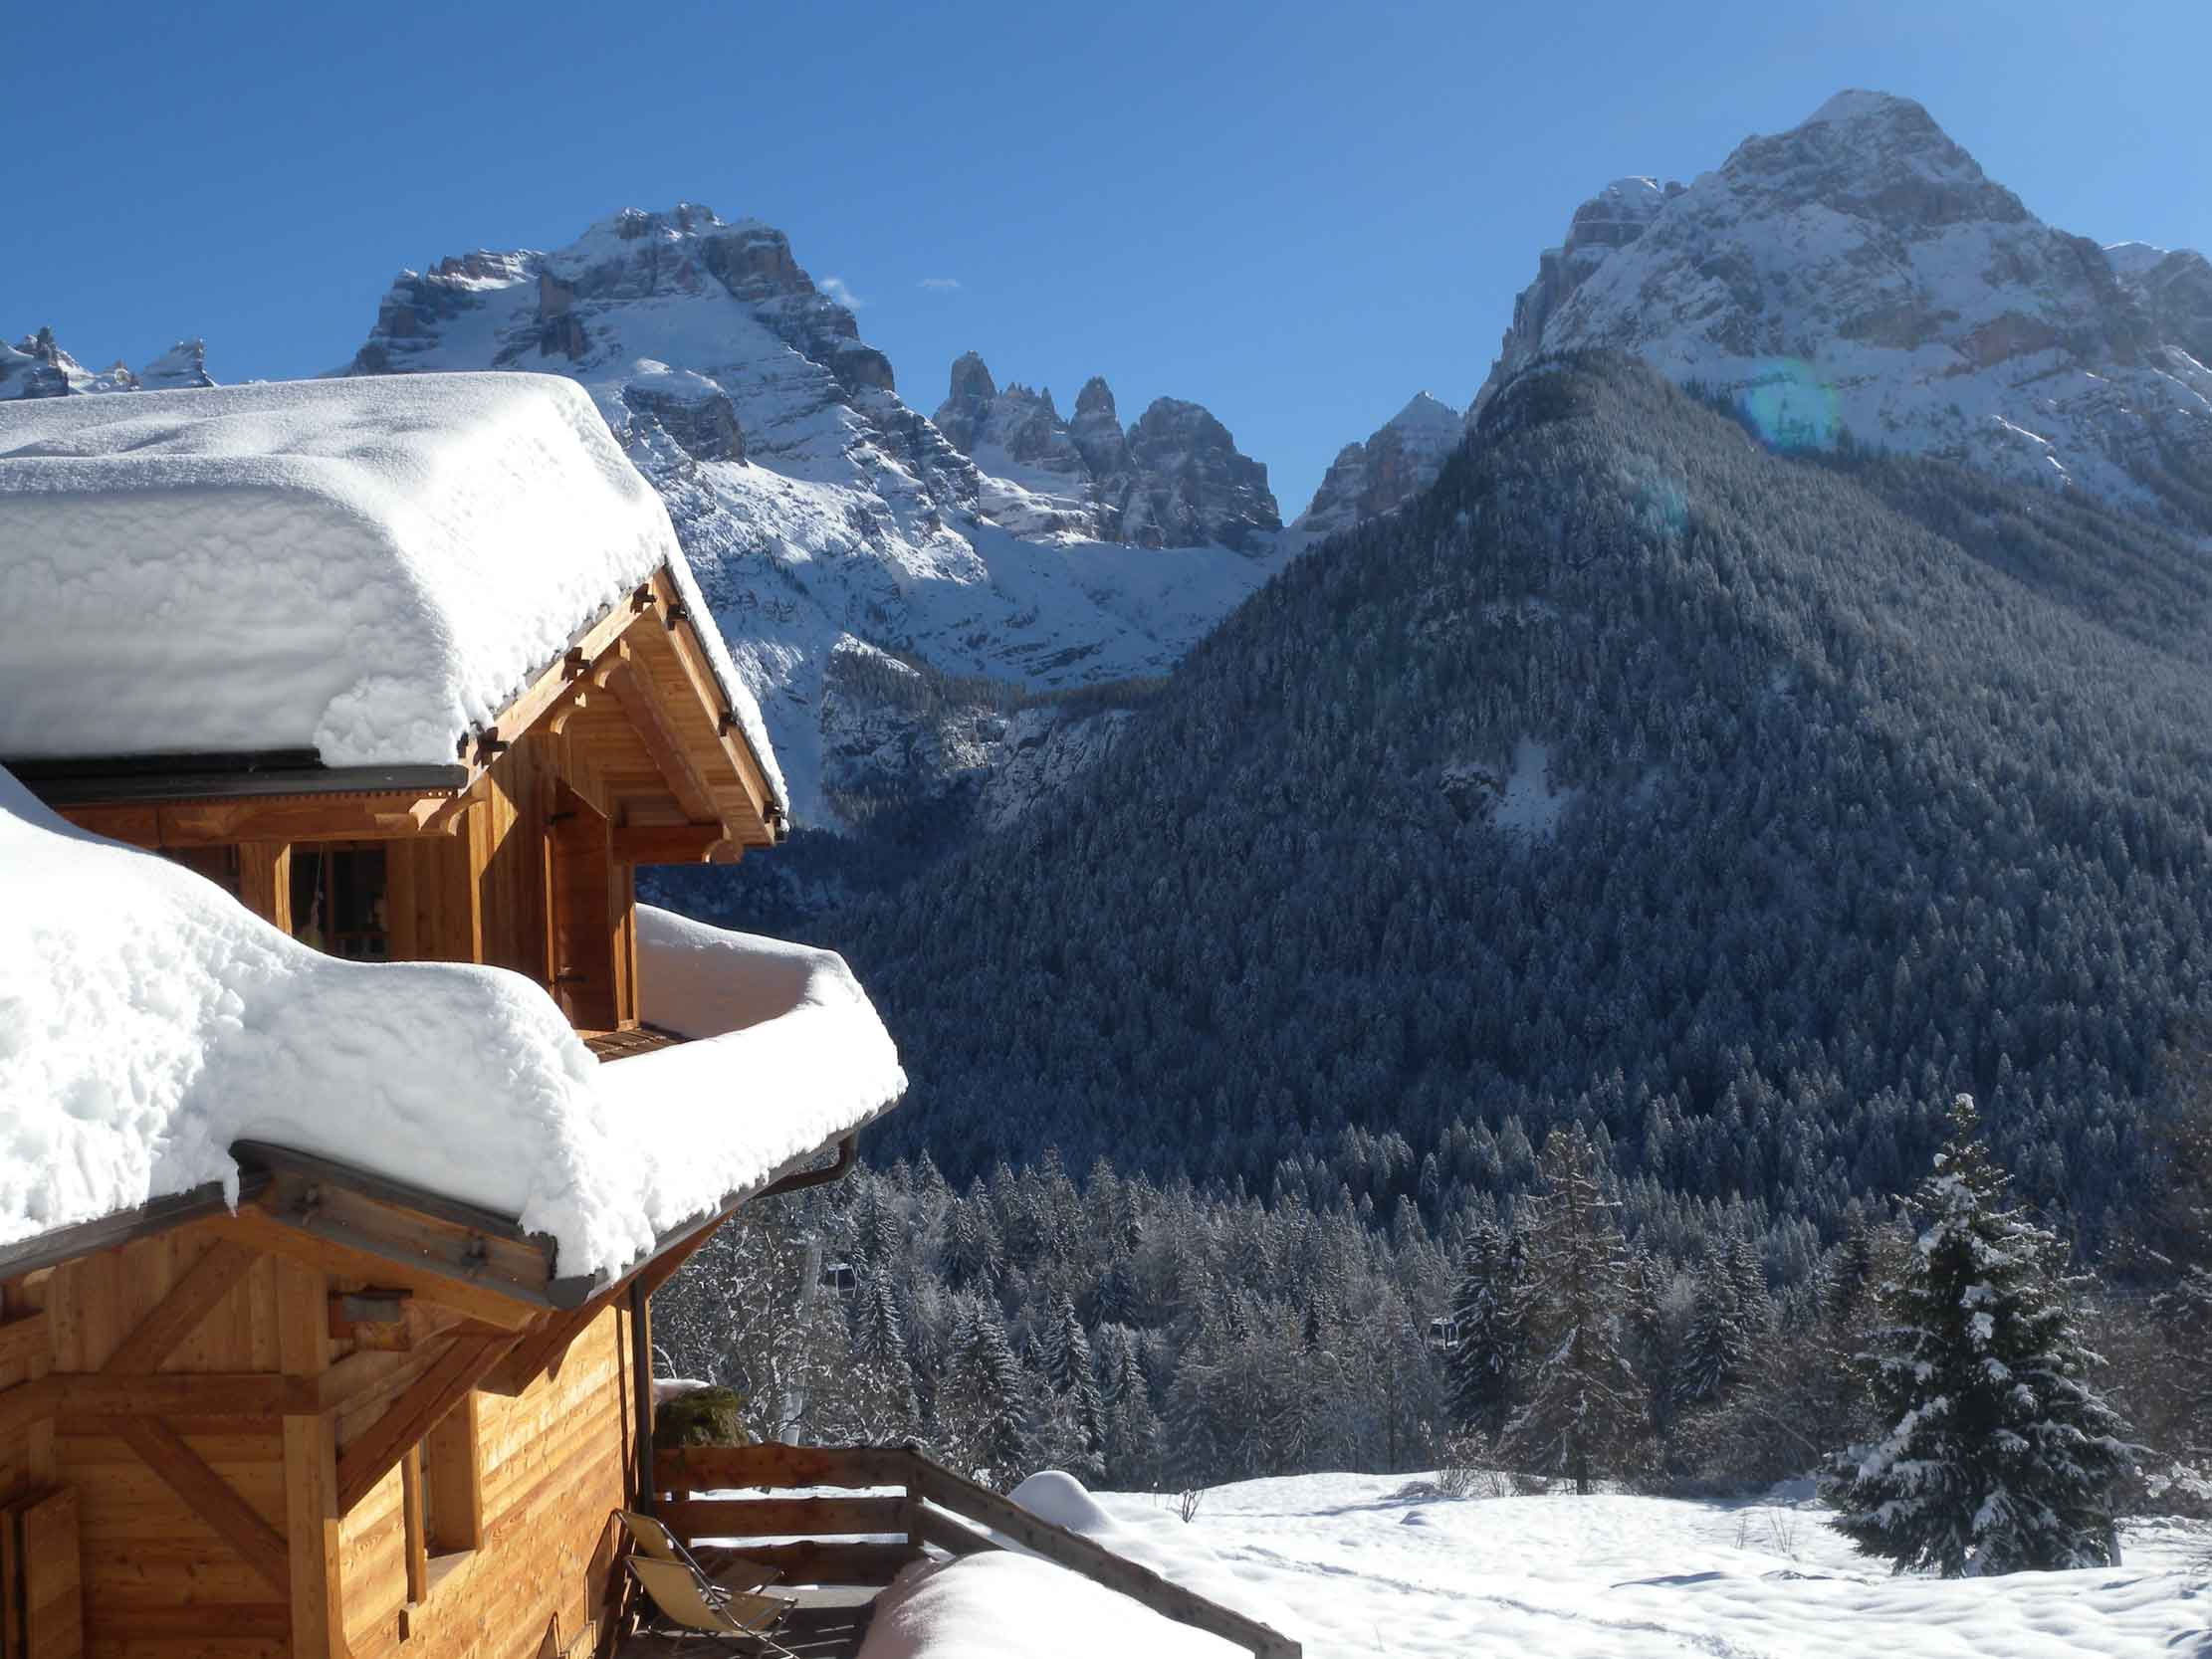 This magnificent alpine chalet, poised on a mountainside in the Brenta Dolomites, is perfect for ski and après-ski, Italian style.